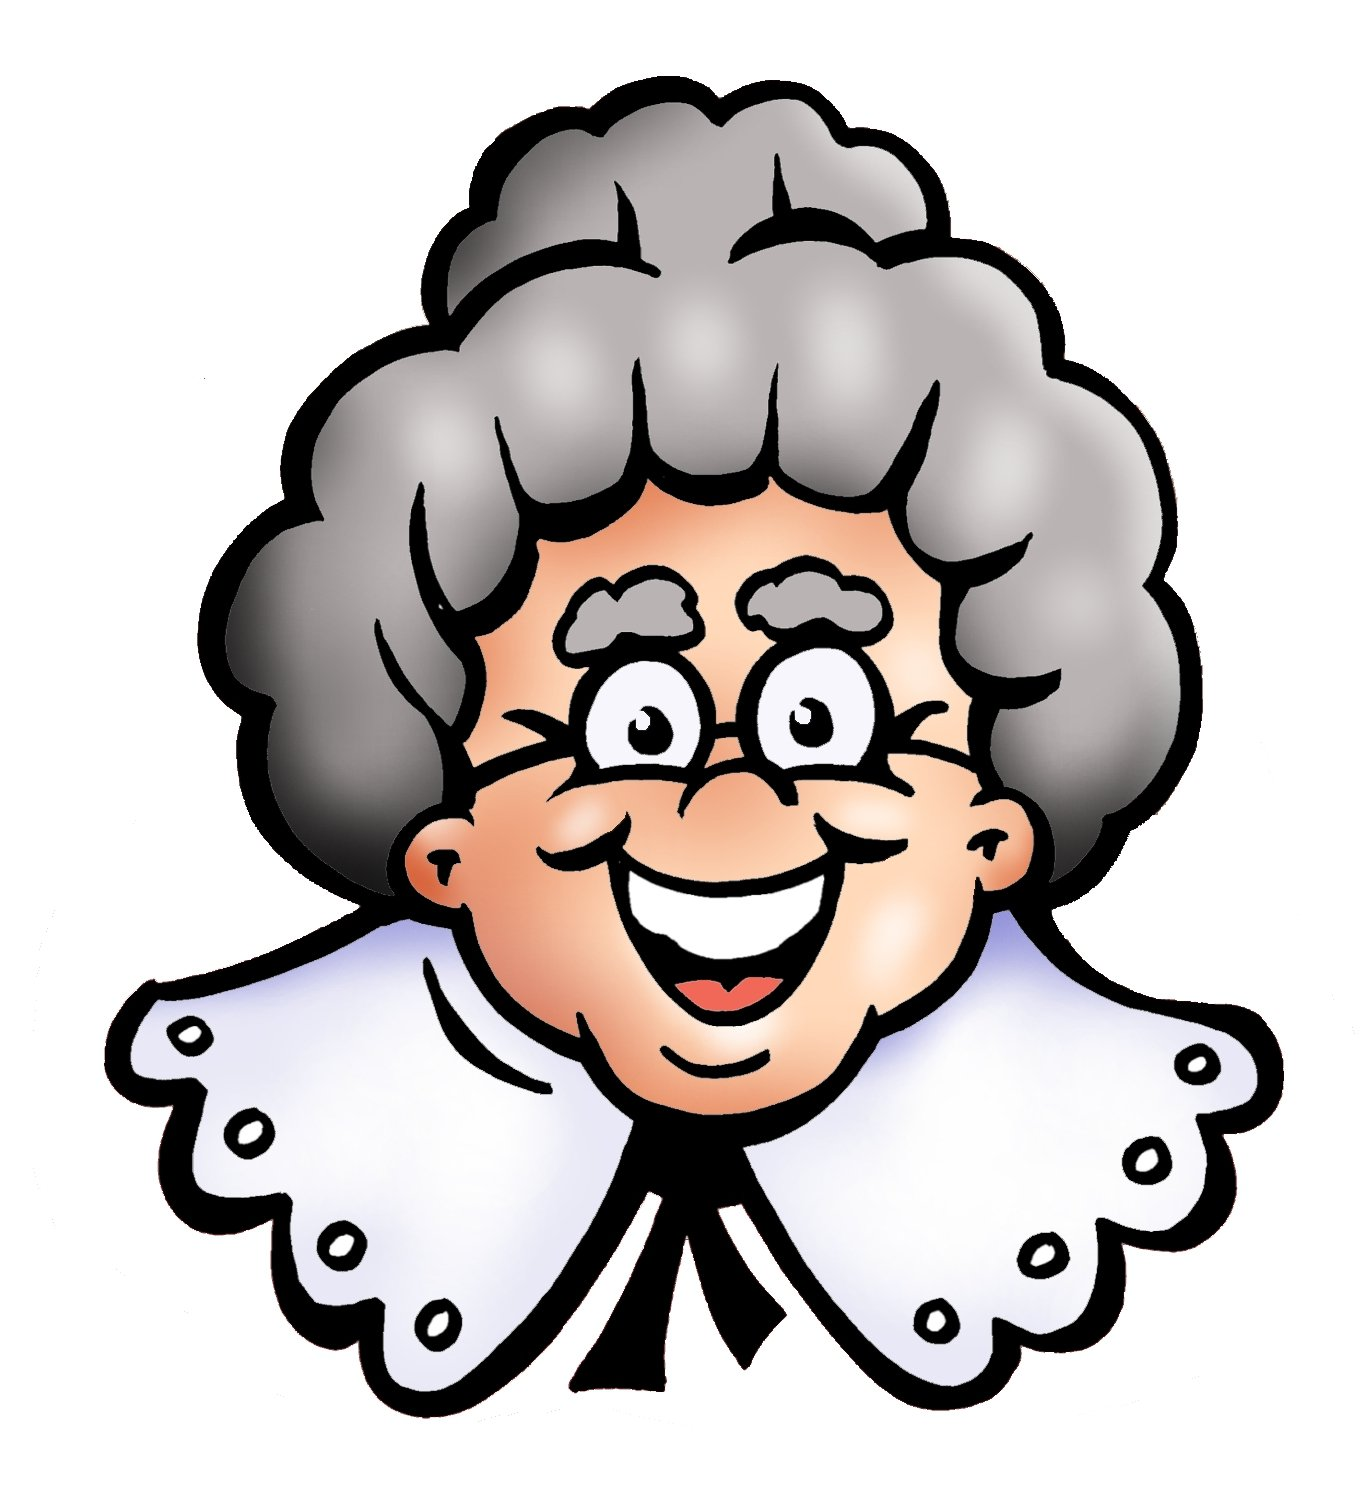 Grandma Cartoon - ClipArt Best